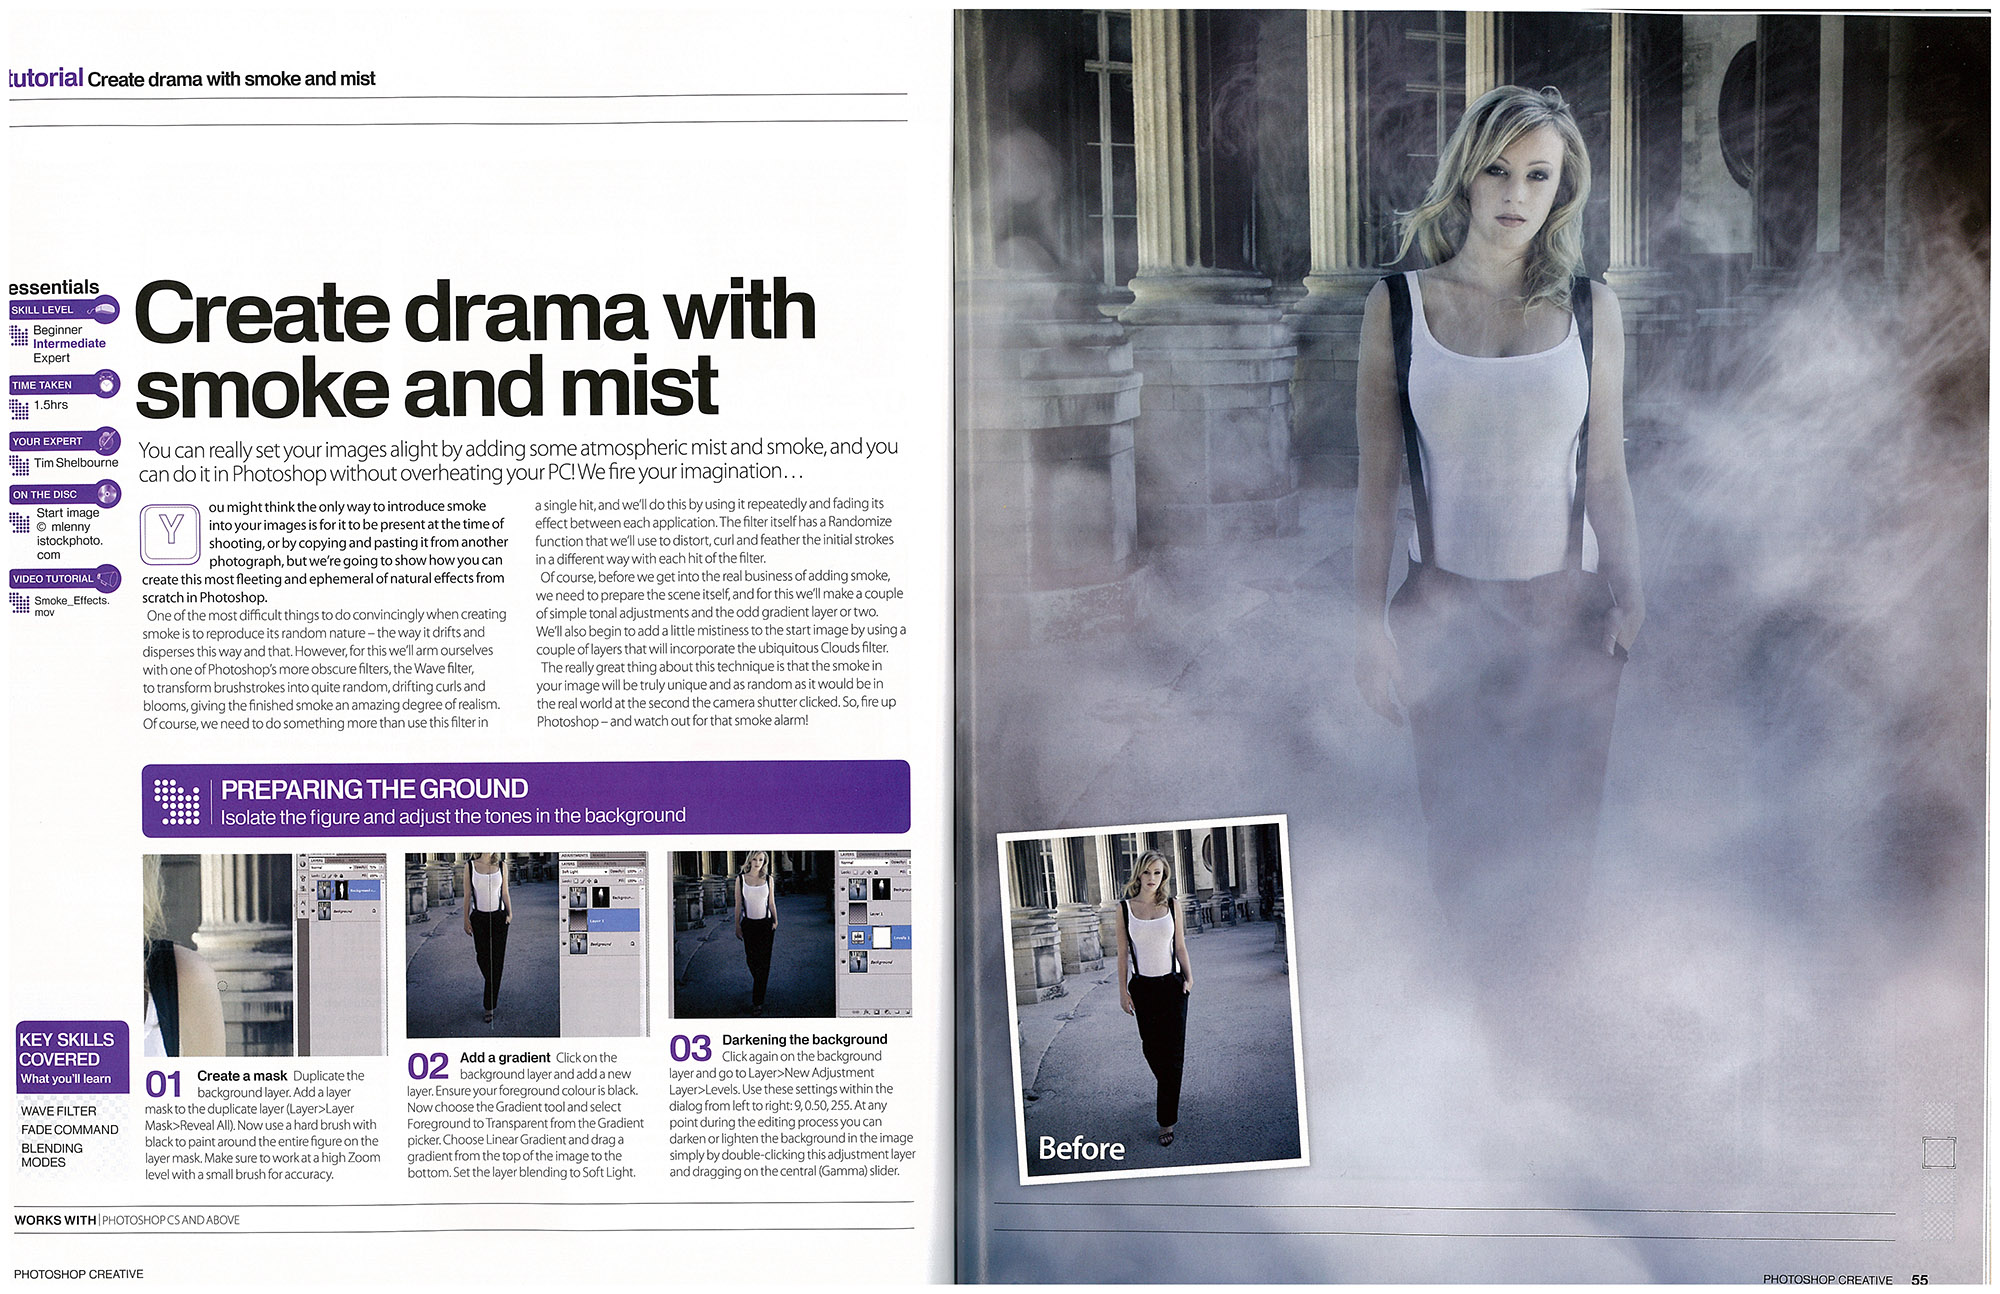 Photoshop tutorial create drama with smoke and mist mlenny photography photoshop creative create drama with smoke and mist tutorial 54 55 baditri Choice Image